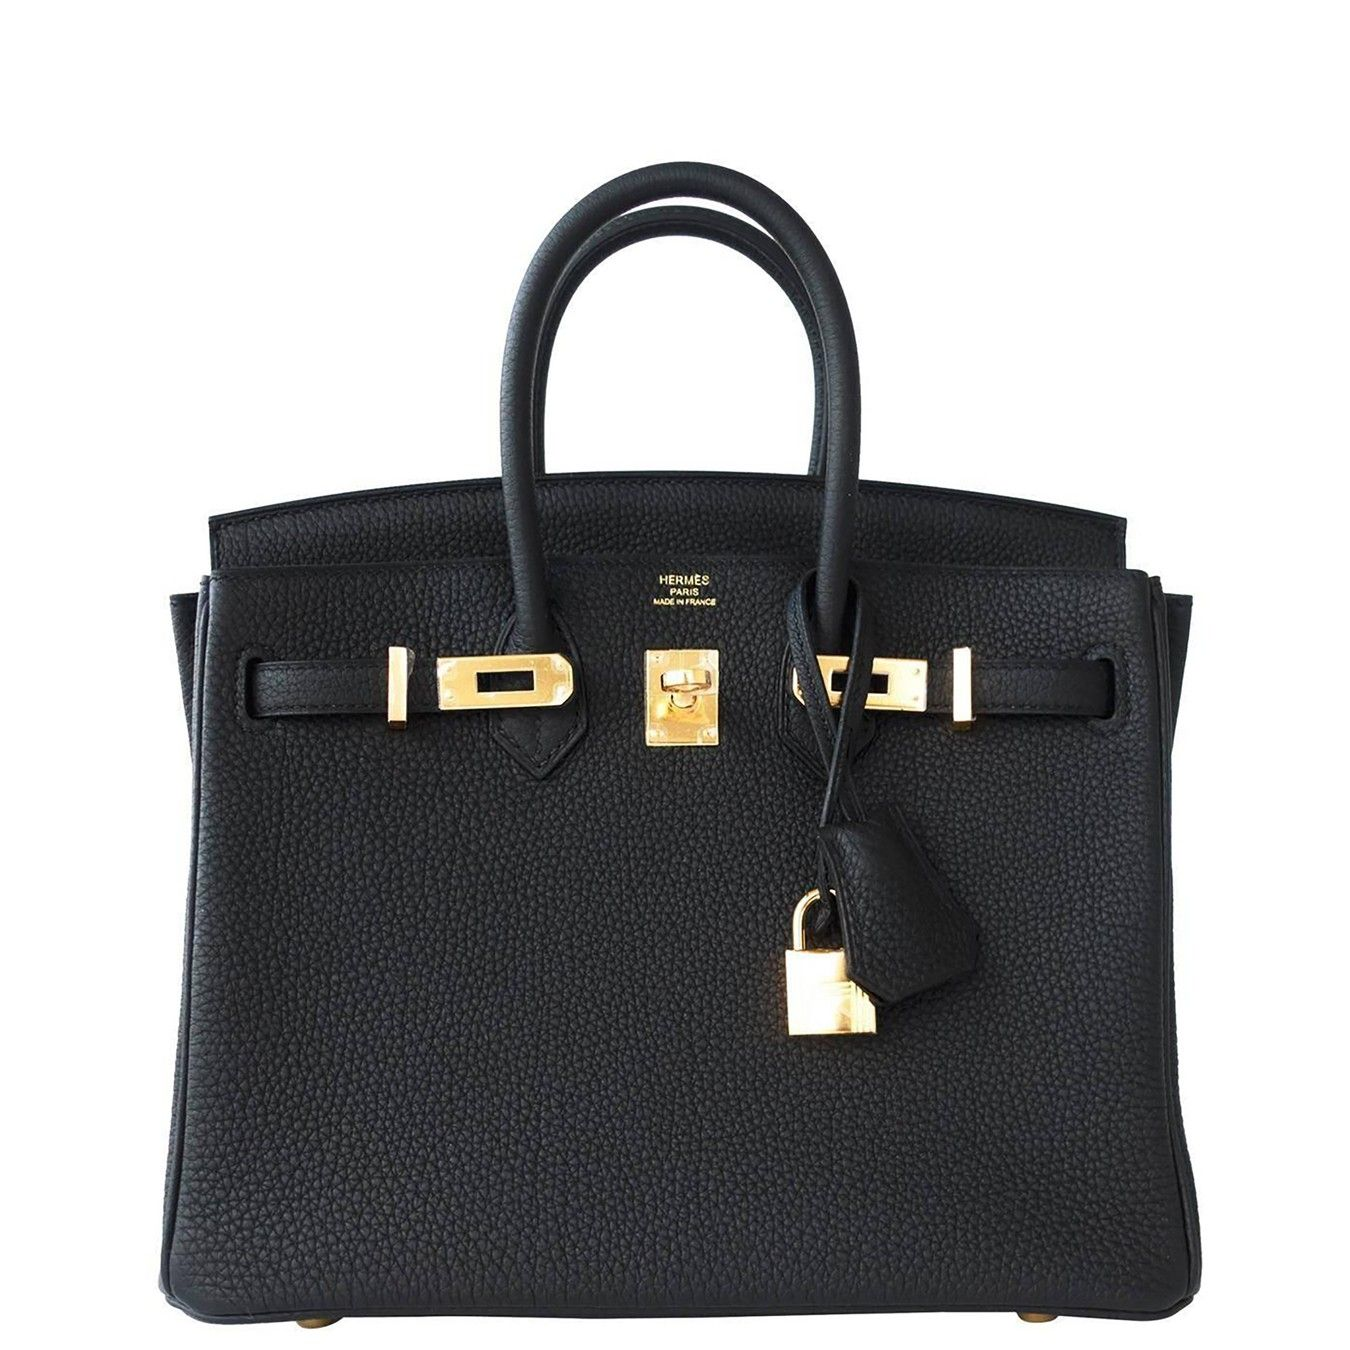 Hermes Black Mini Birkin 25cm in Togo Leather and Gold Hardware ... a01c665af27d4